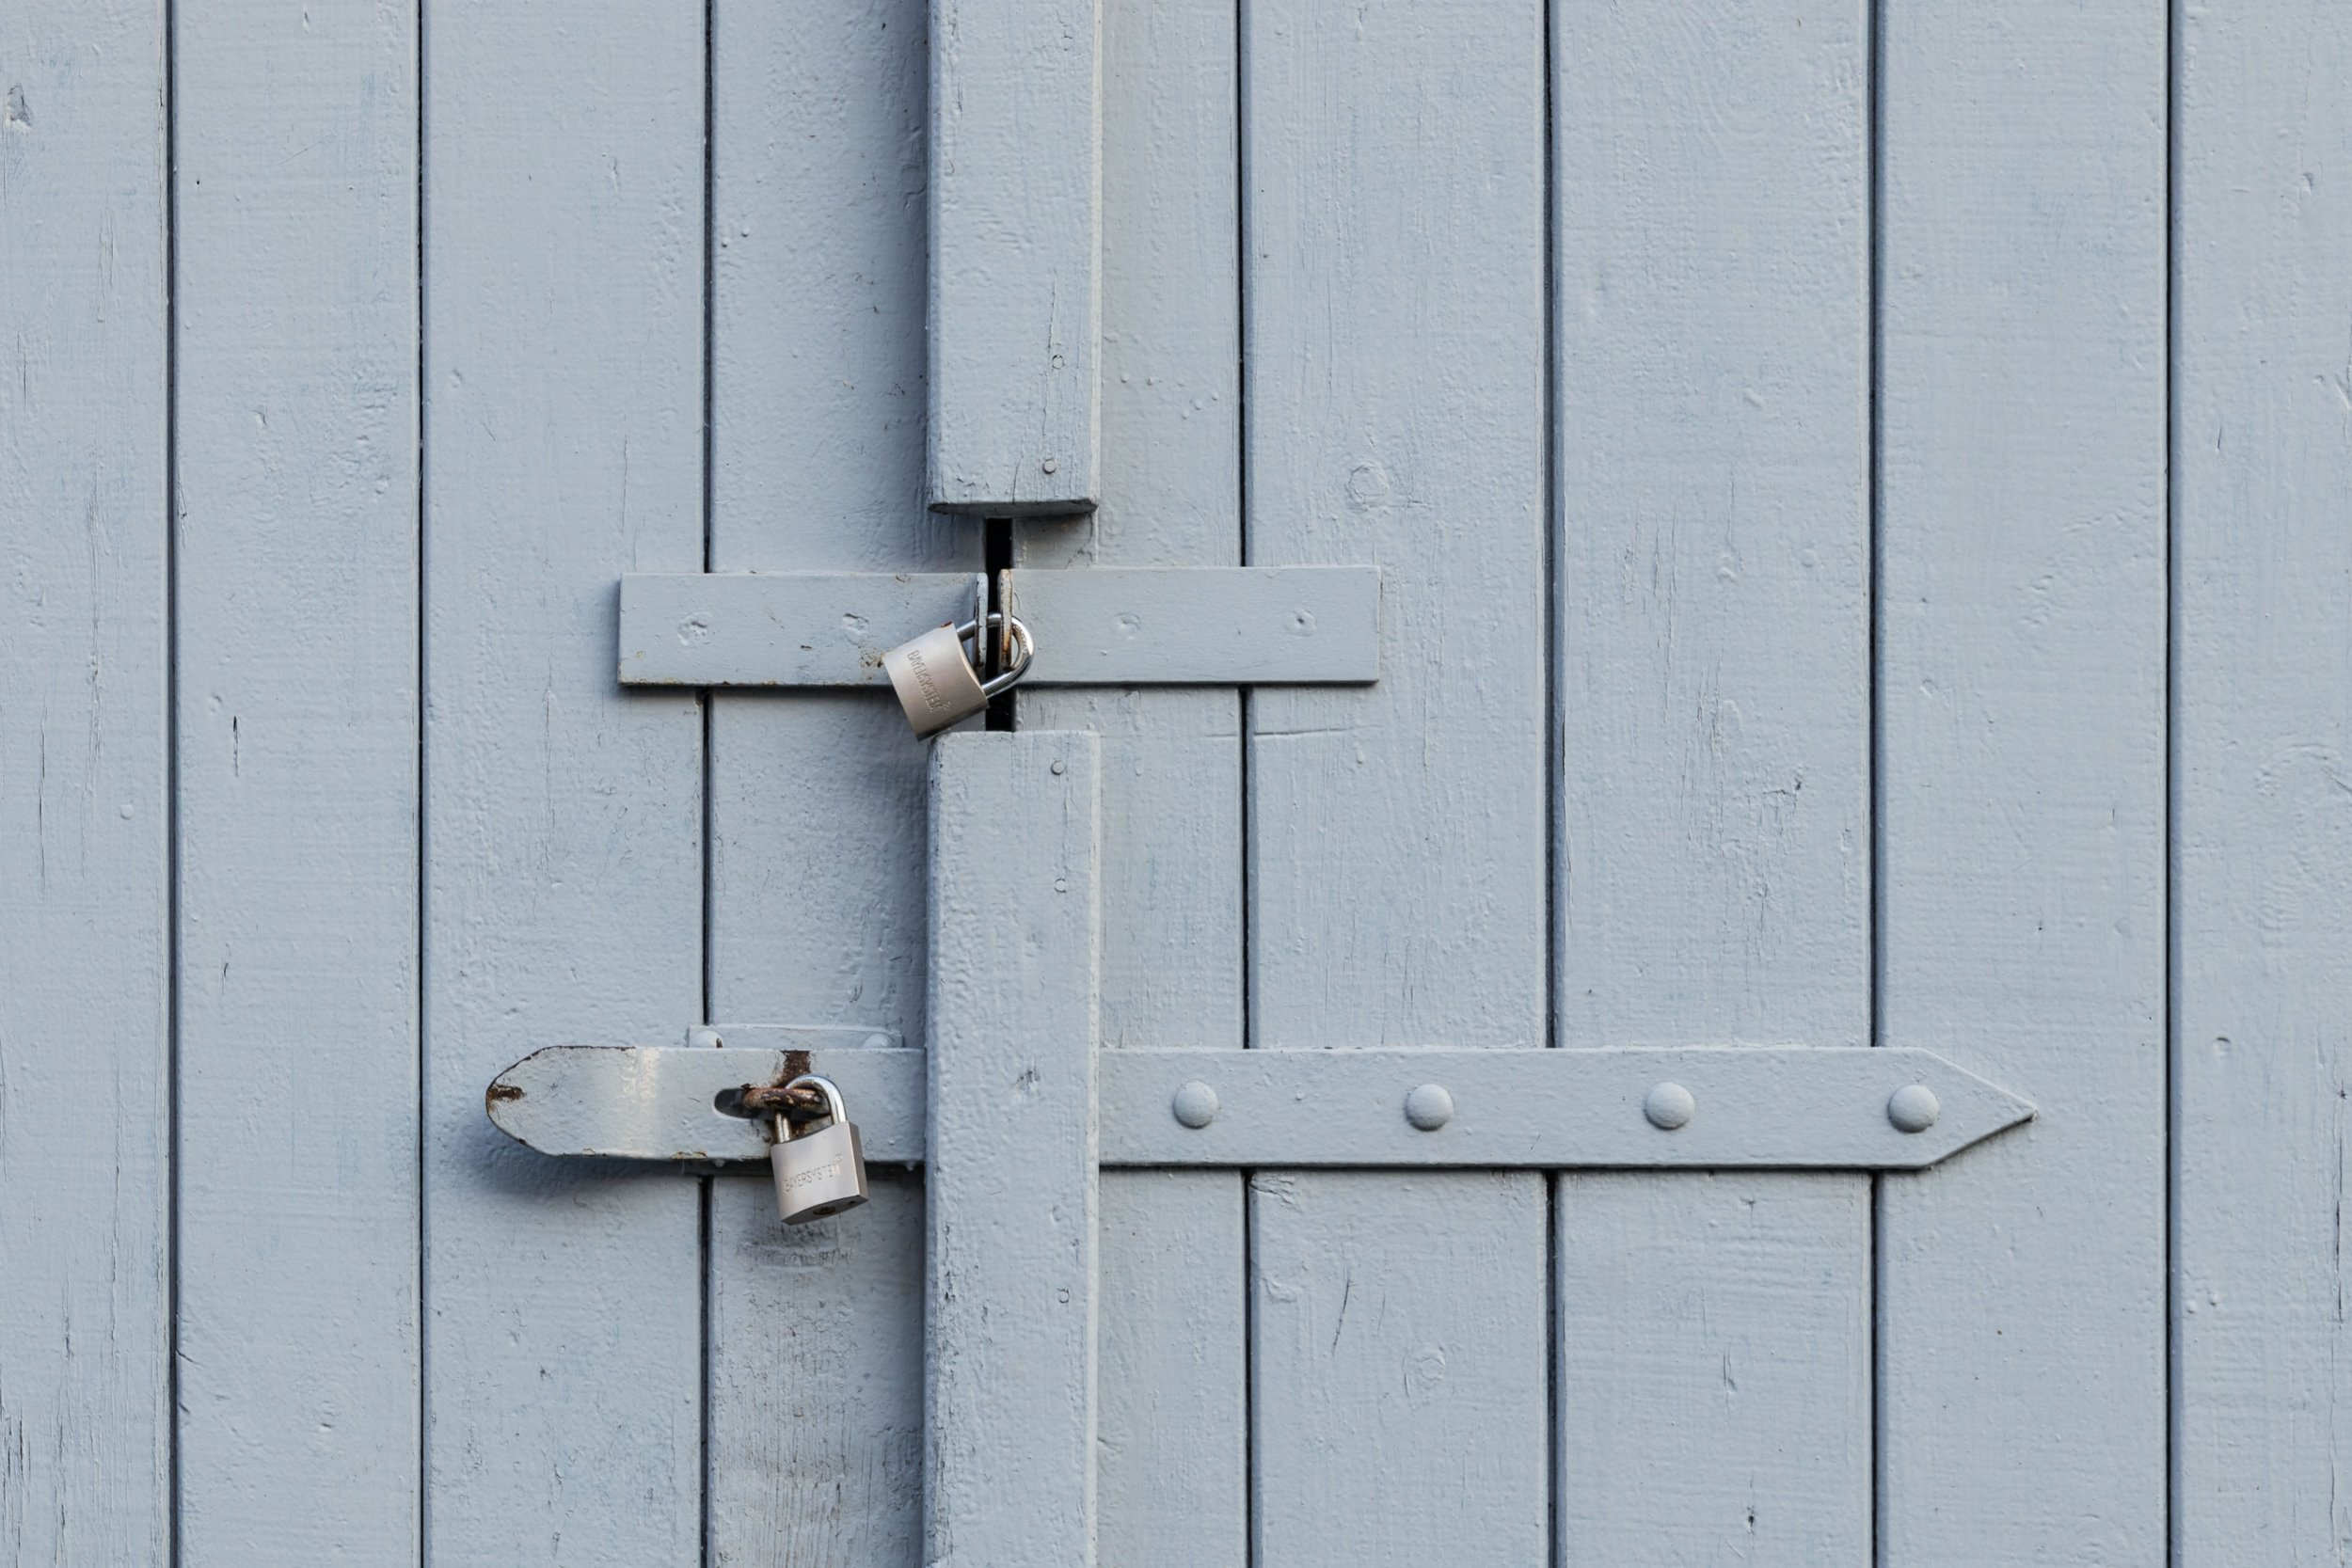 7 Security Trends to Be Aware of - Published on Loopio